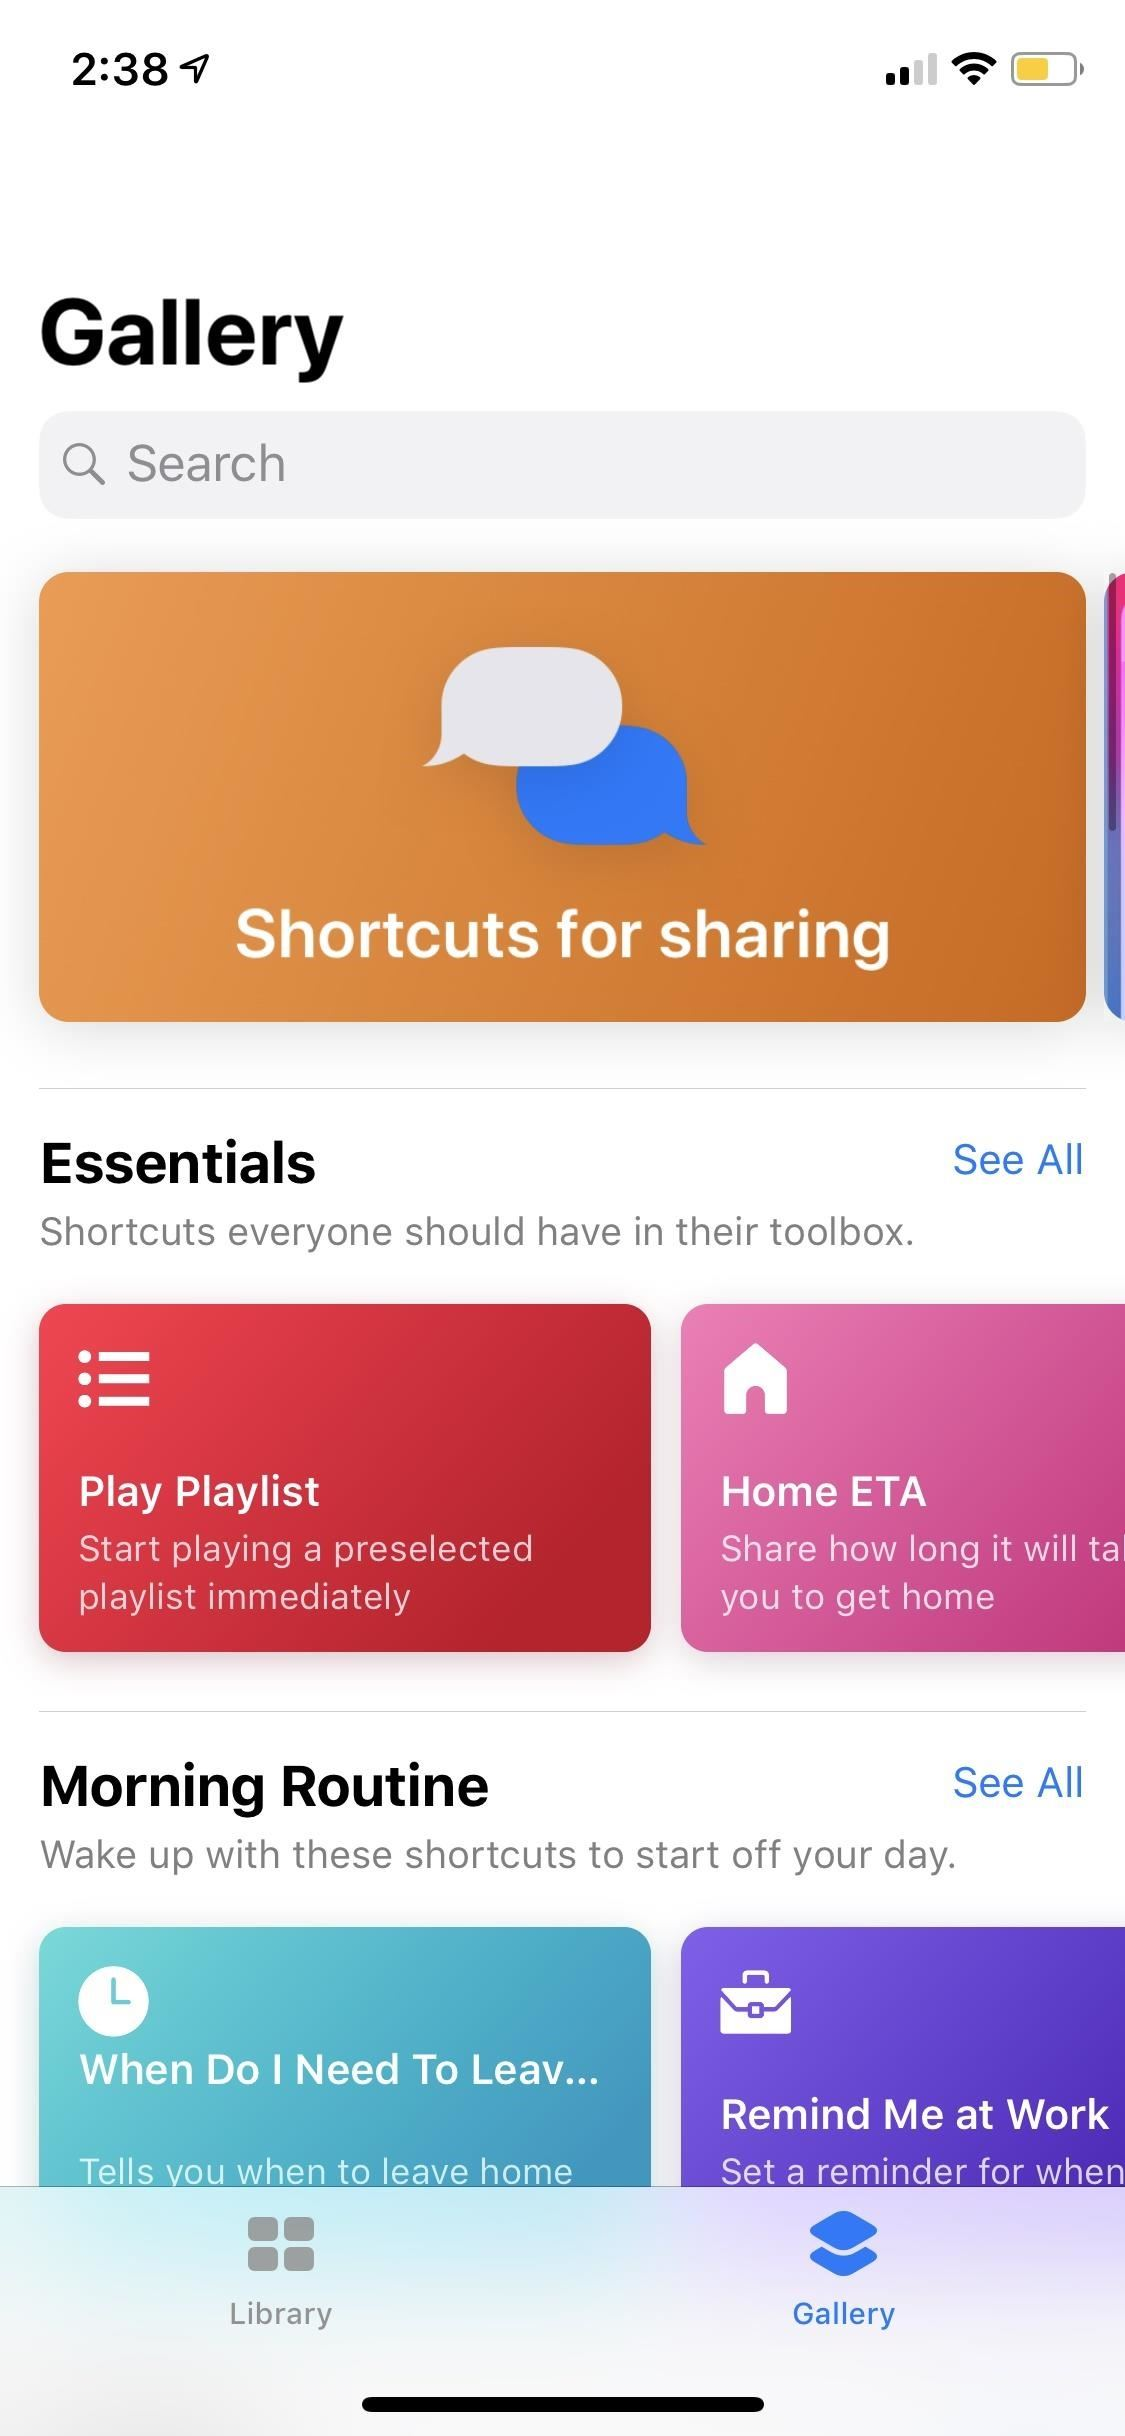 iOS 12s Shortcuts app plans to replace Apple's workflow forever